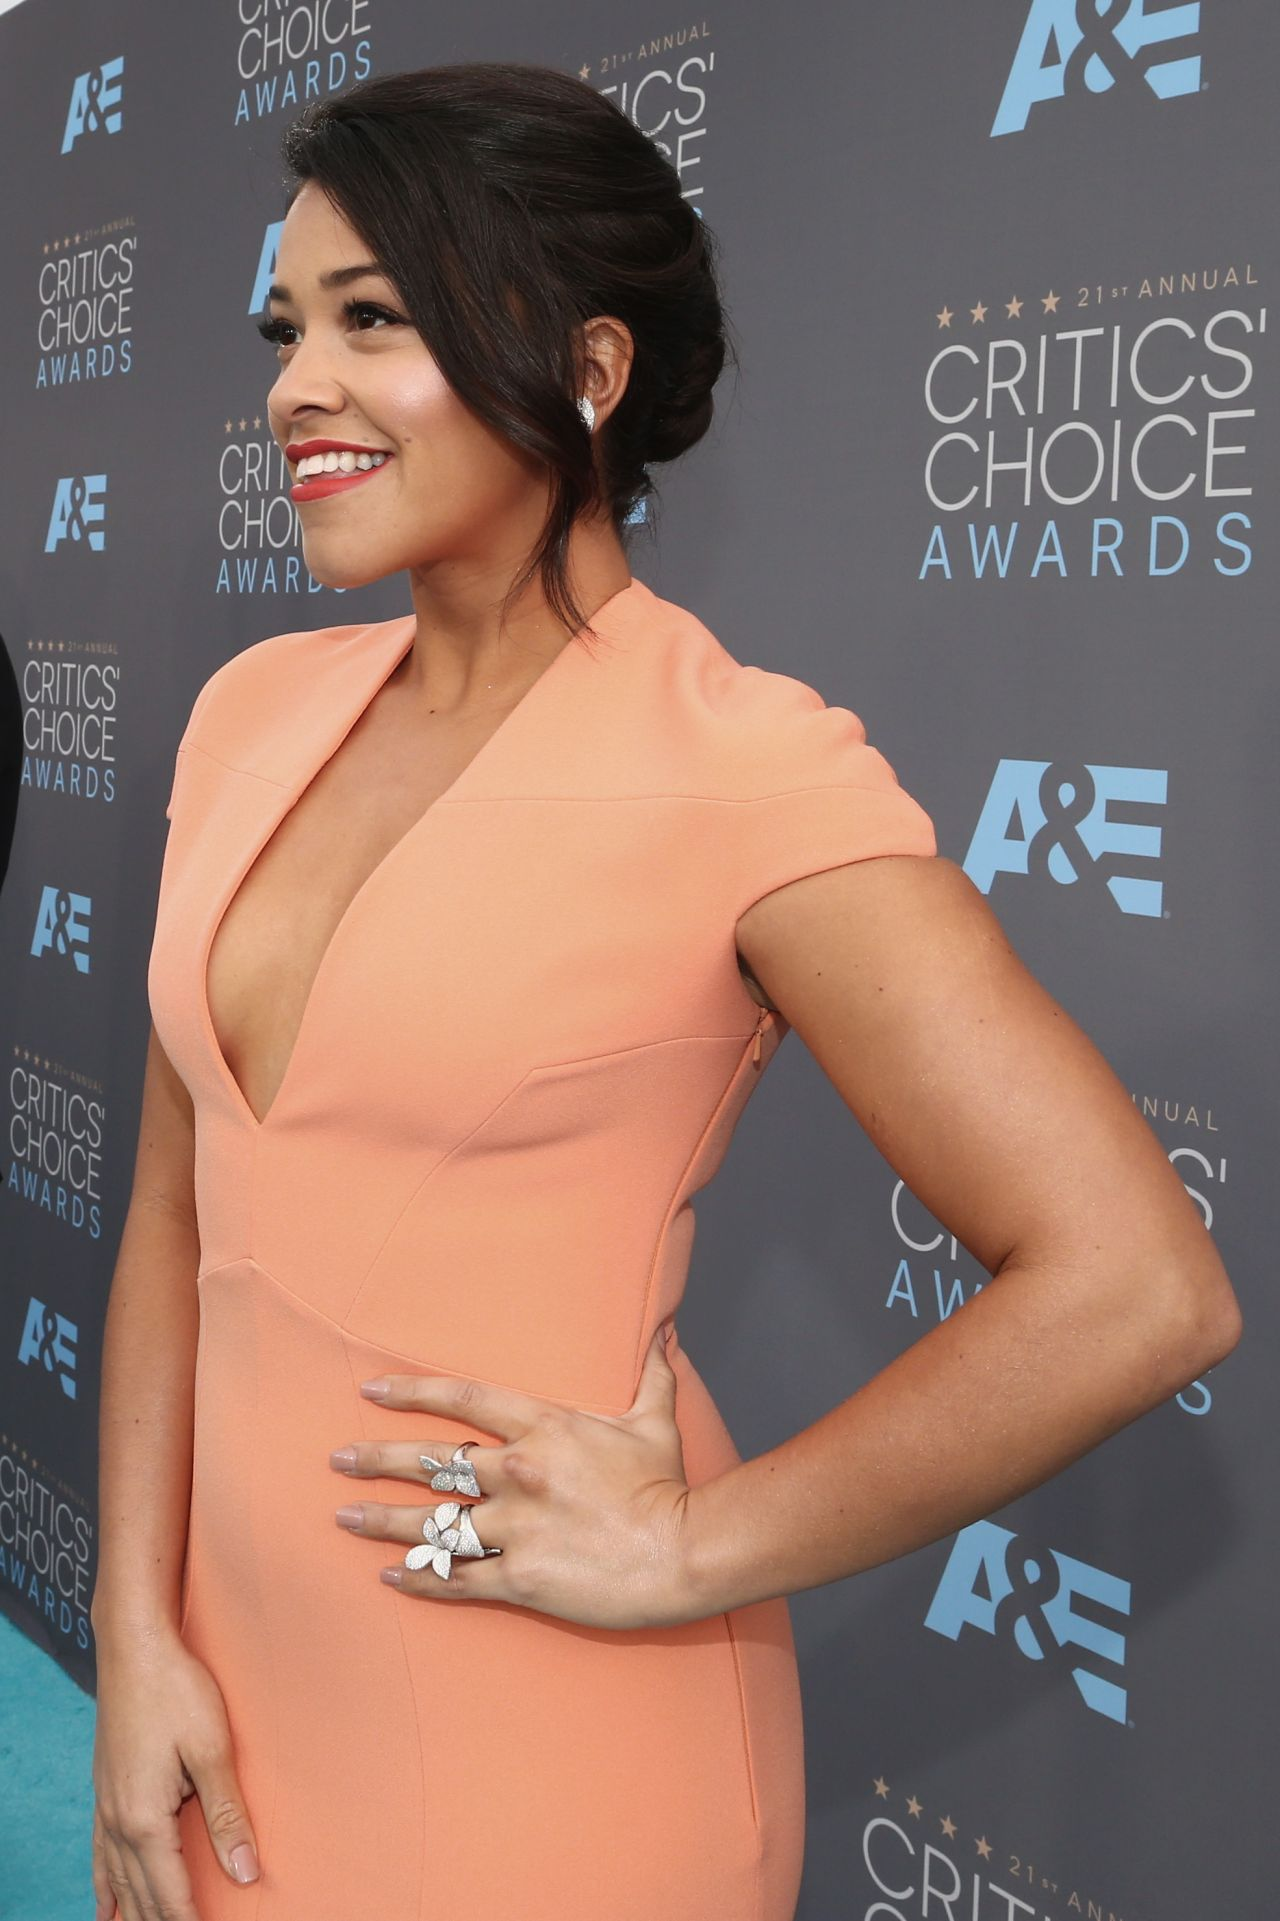 gina-rodriguez-2016-critics-choice-awards-in-santa-monica-5